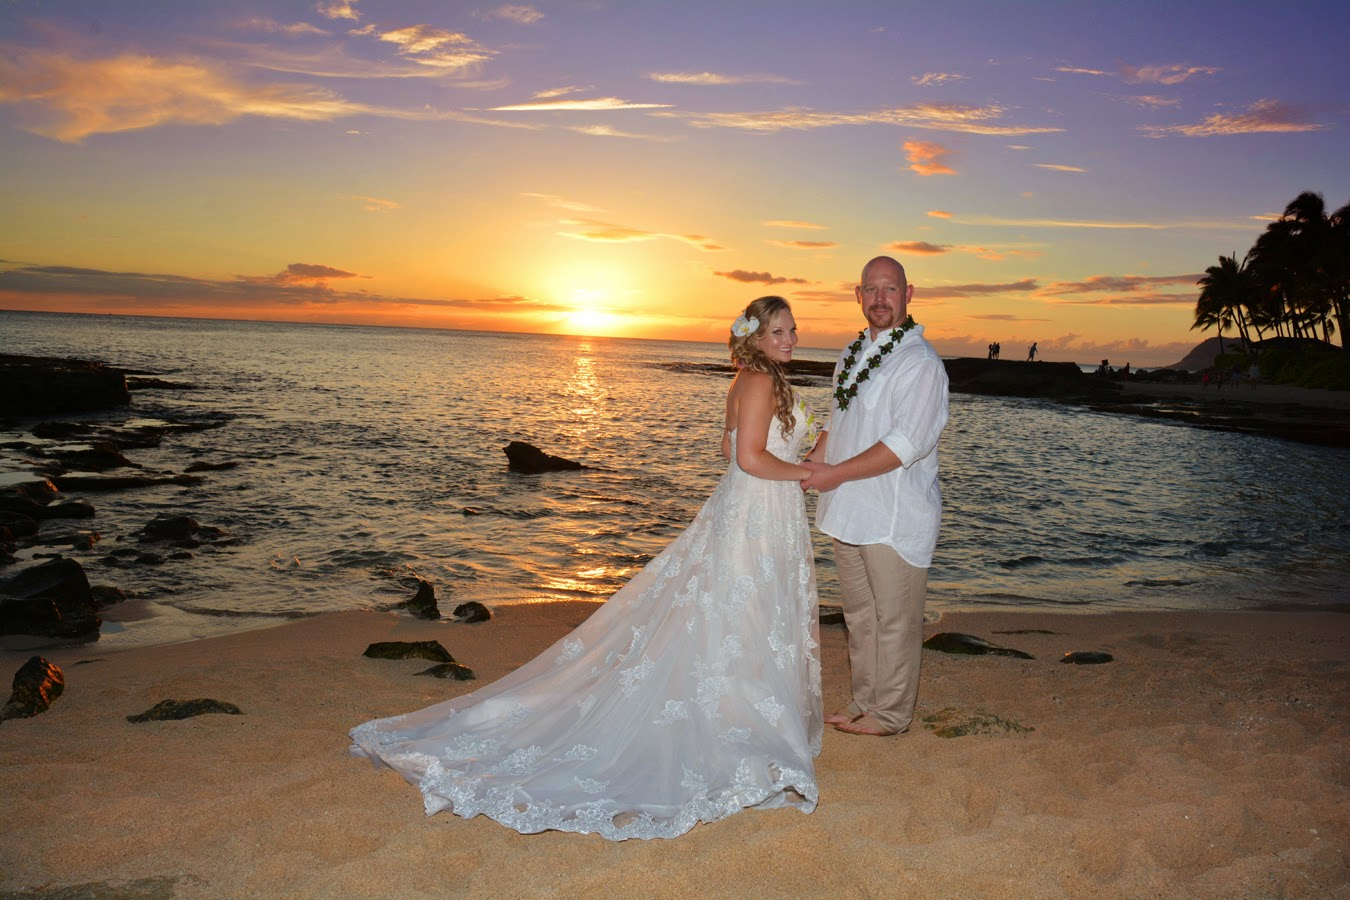 Bridal Dream Hawaii Weddings